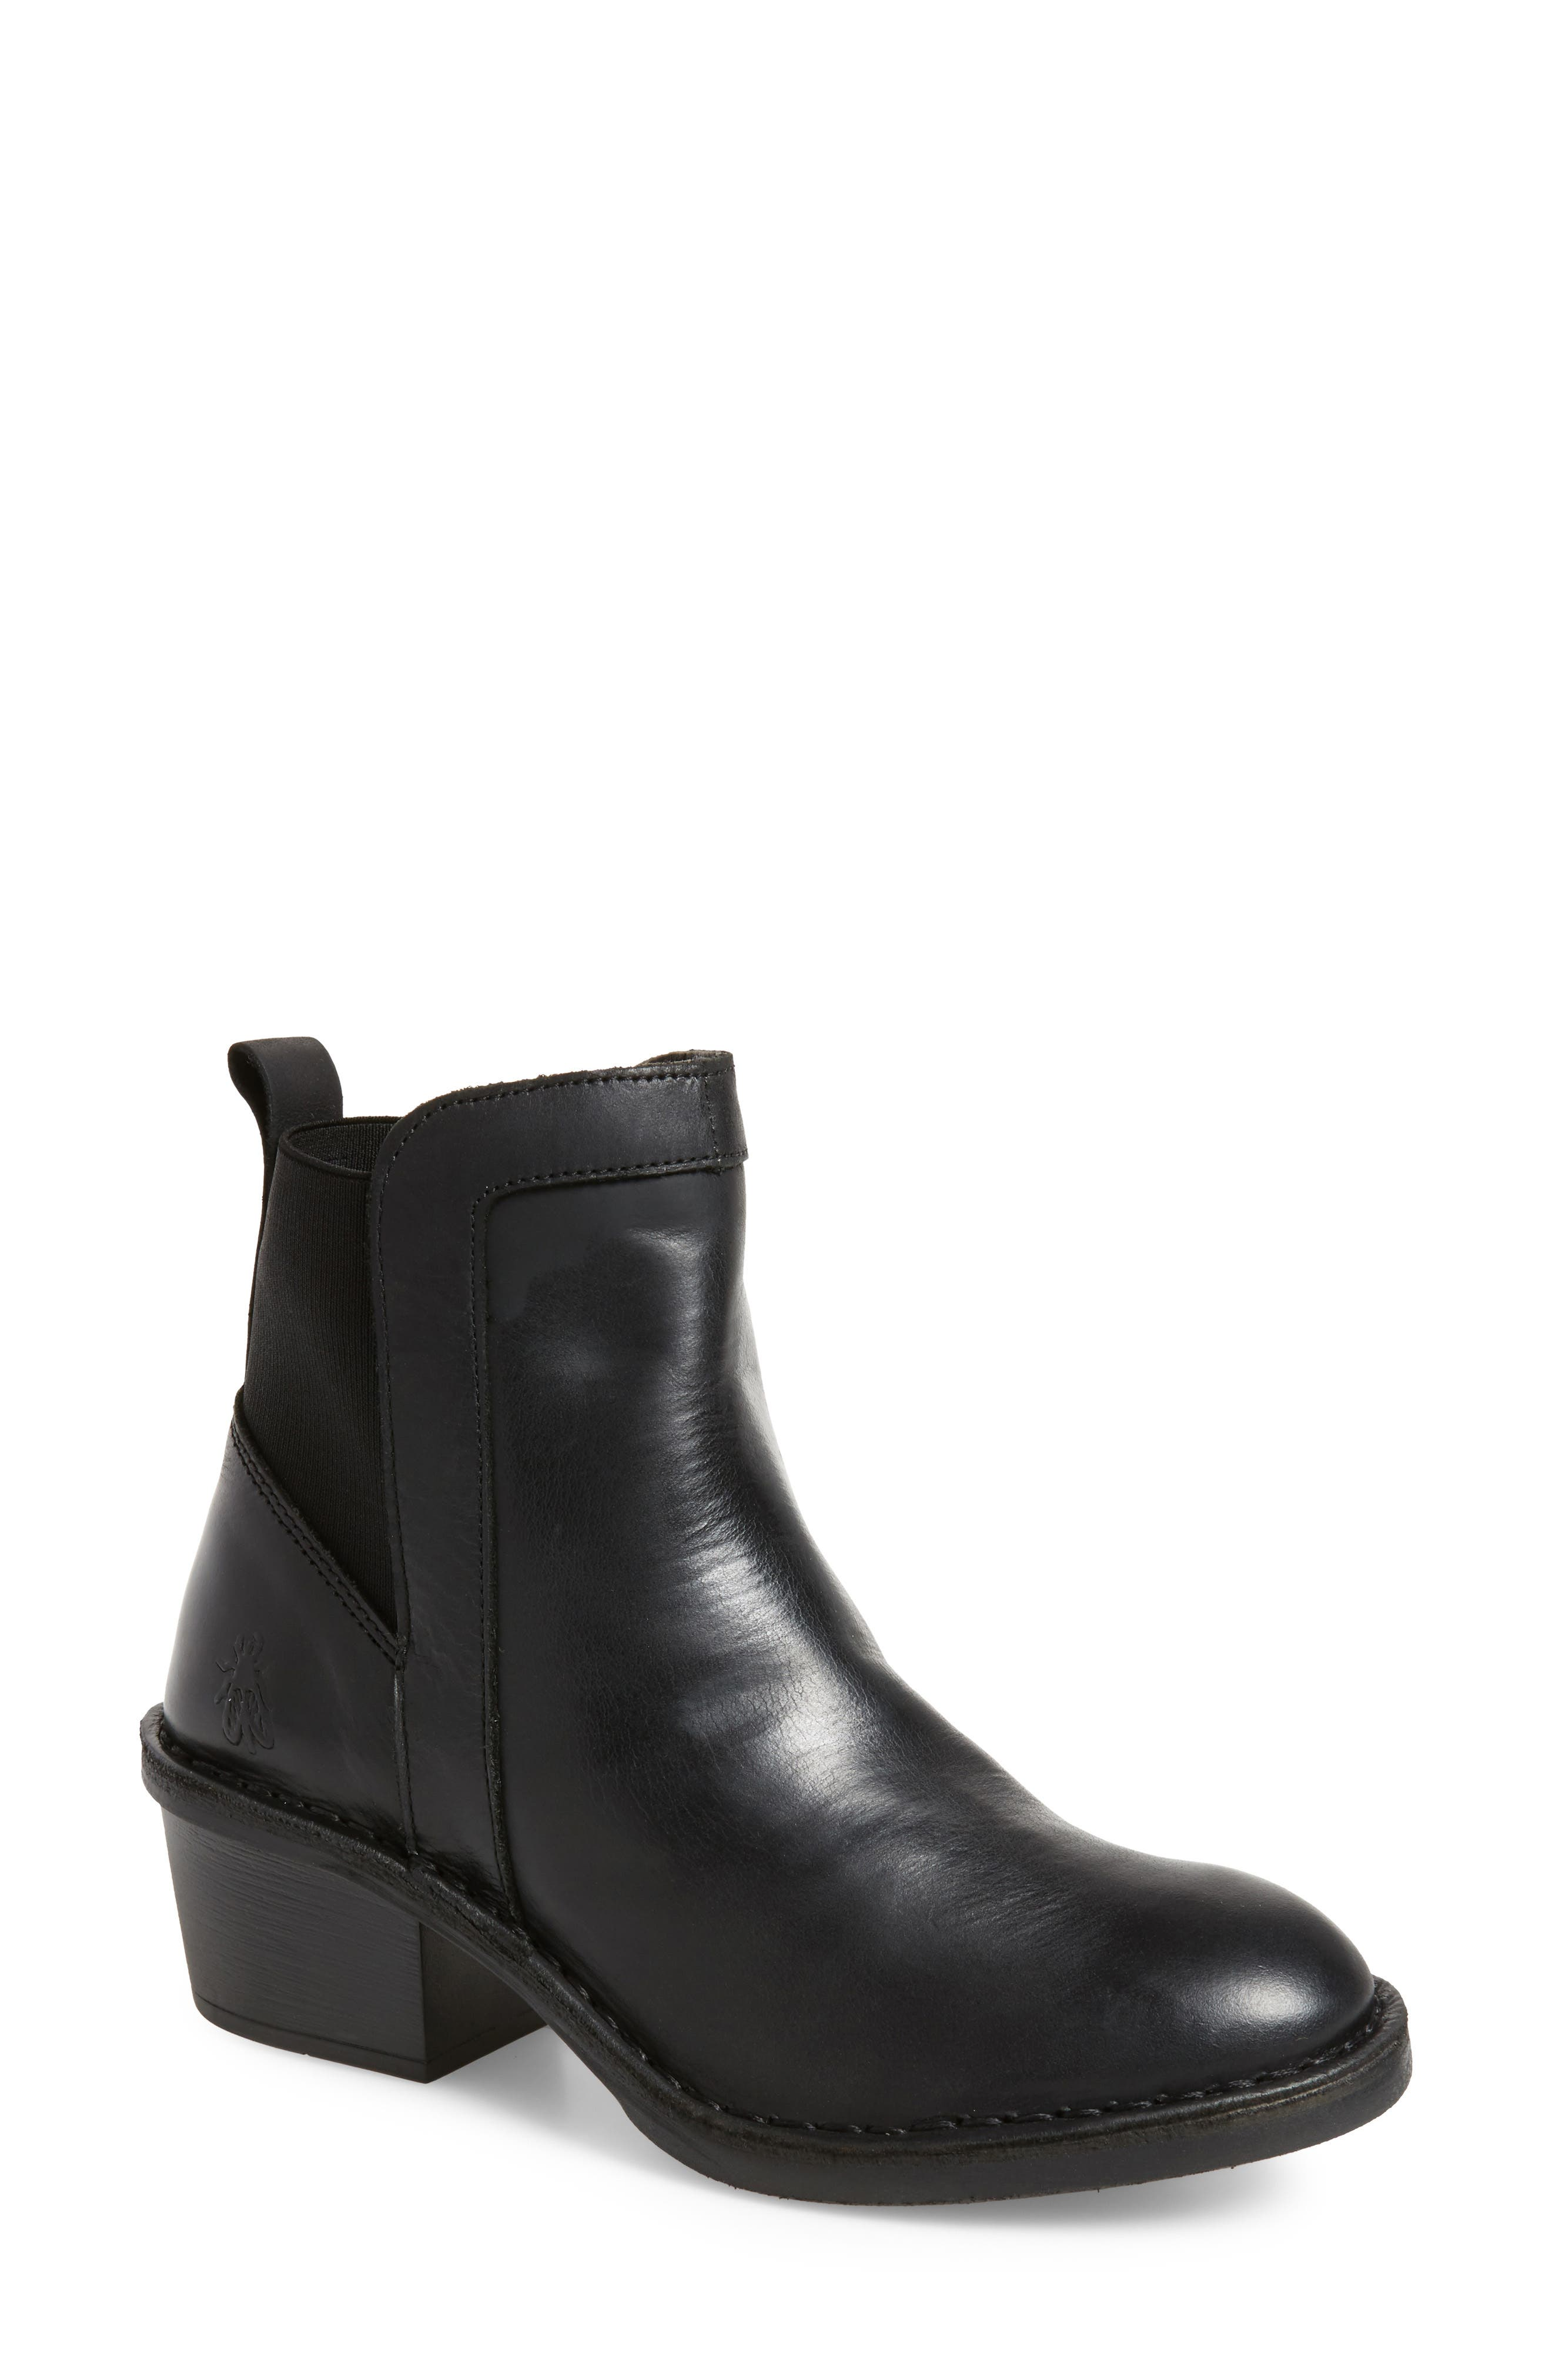 Main Image - Fly London Dicy Bootie (Women)